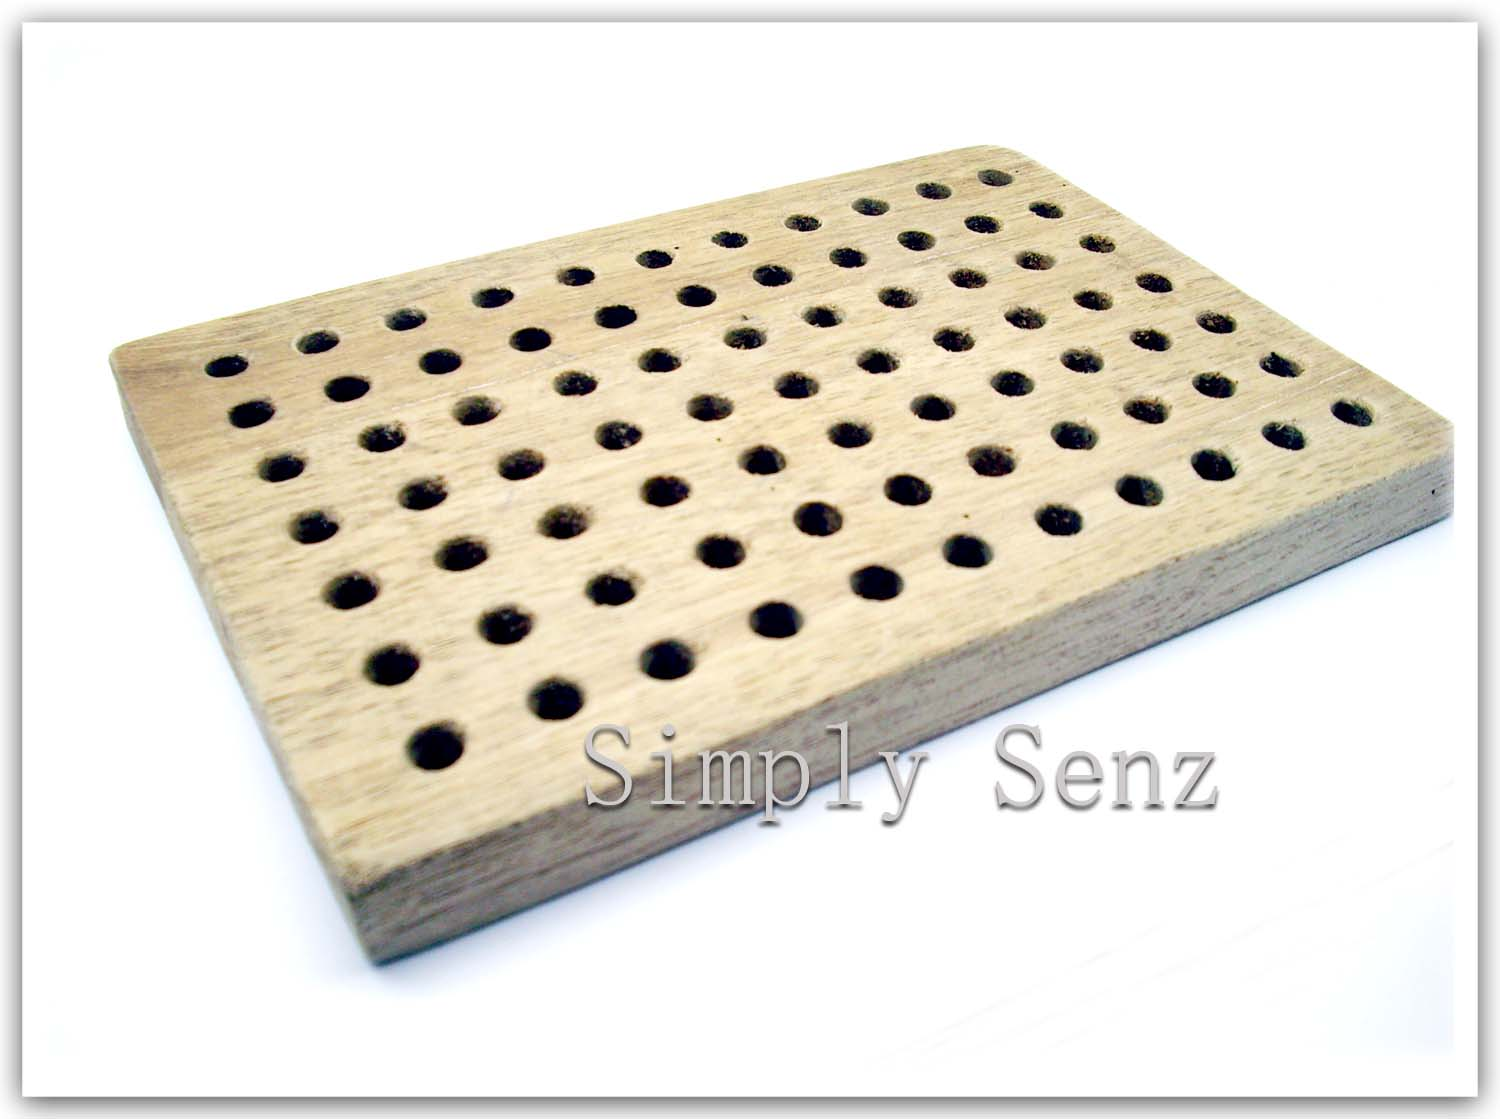 Simply senz making of sabah snake grass capsule filler diy something which is easy and cheaper way this do it yourself capsule filler board make my filling of herb powder into the tiny capsule is much faster in solutioingenieria Gallery